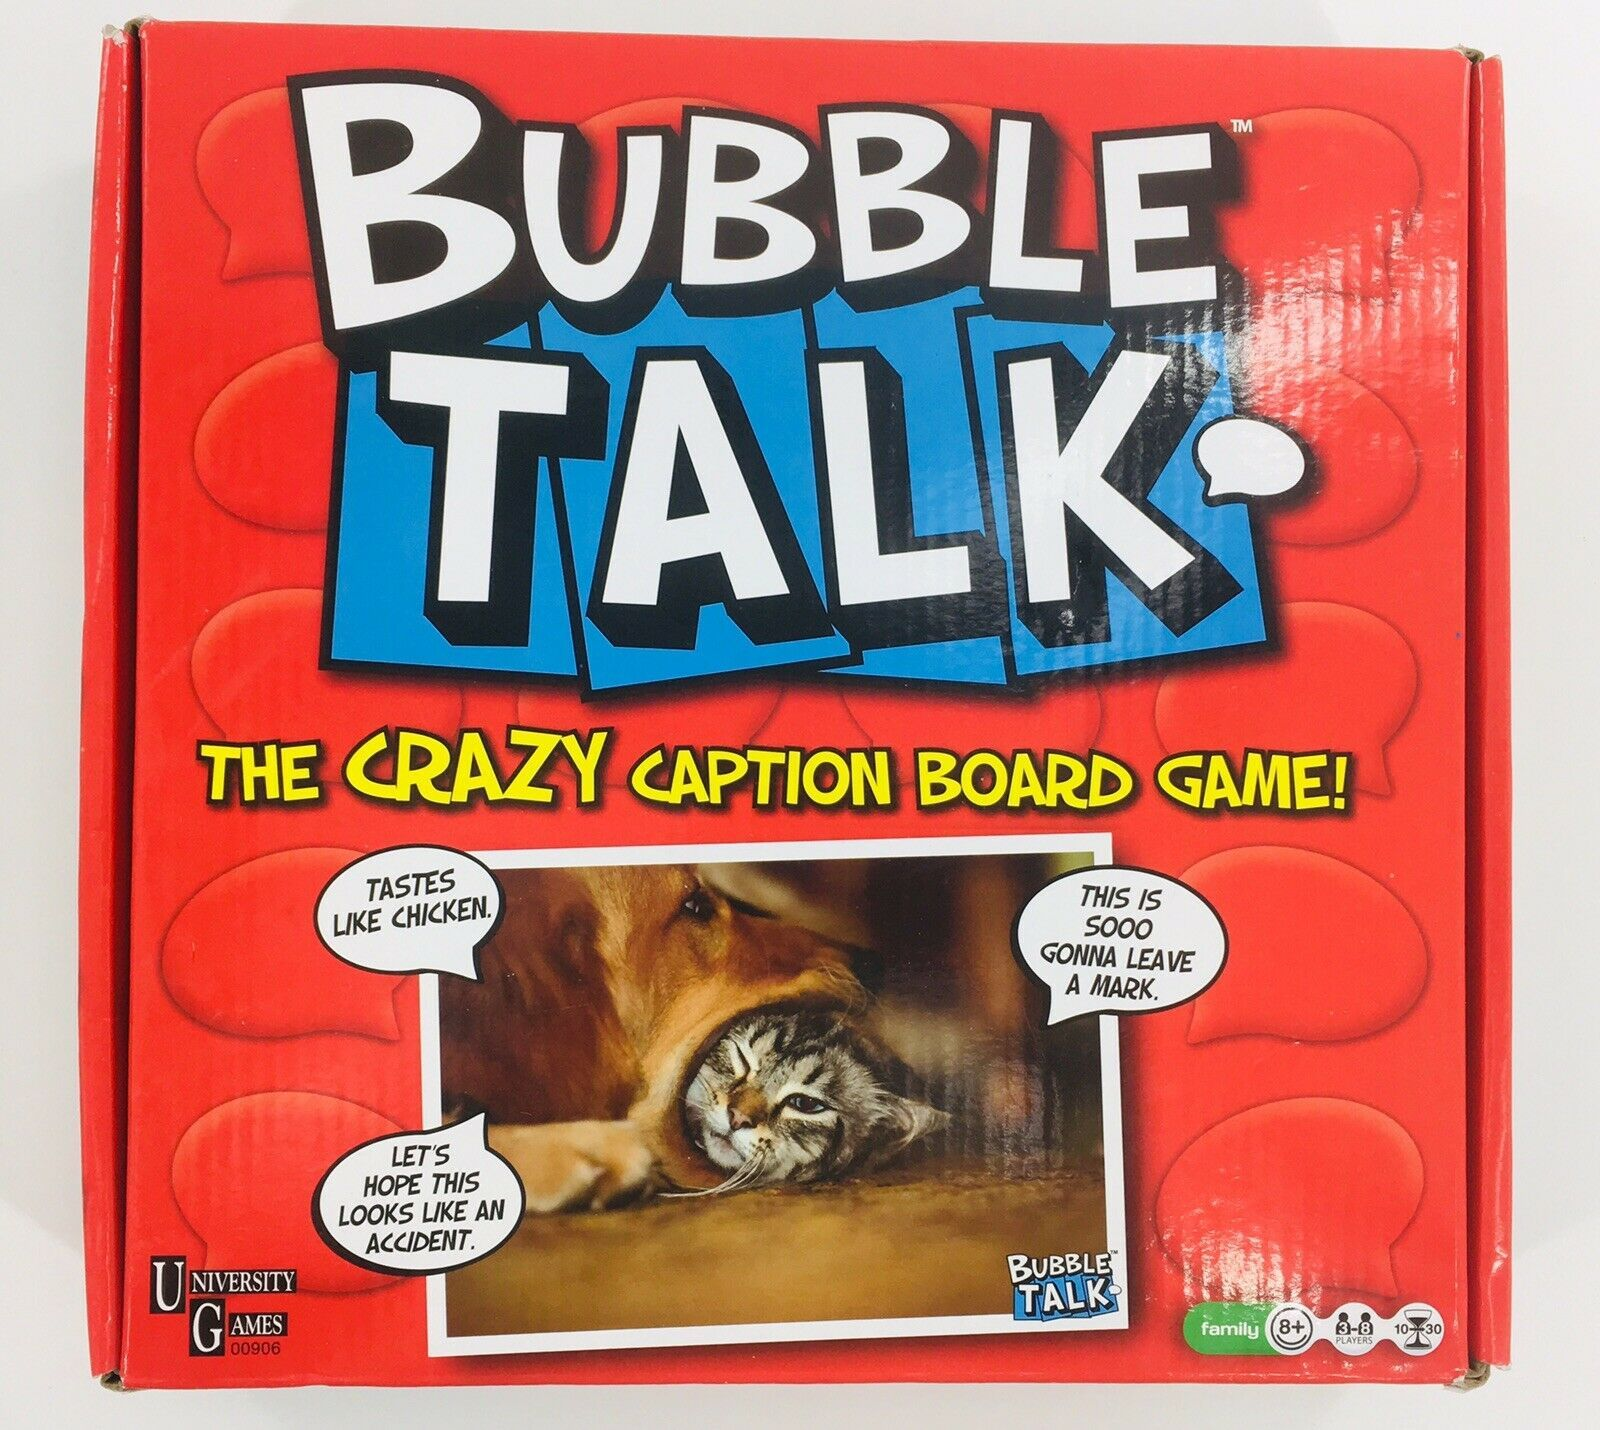 Primary image for Bubble Talk The Crazy Caption Board Game University Games